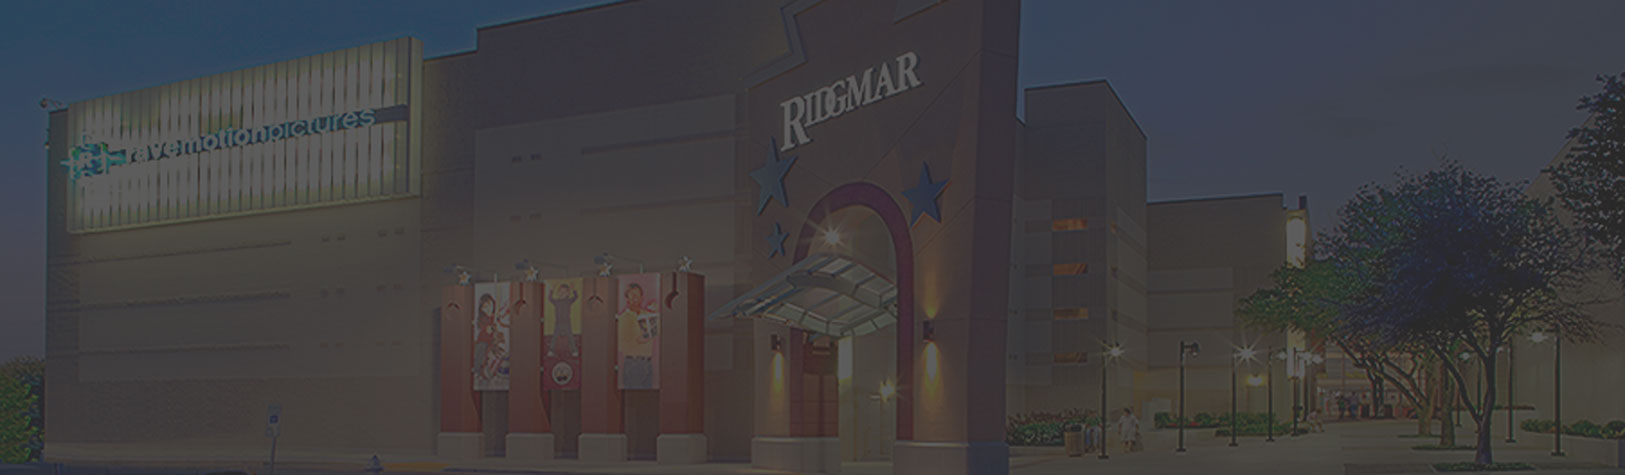 inPLACE Design to Provide Design Services for the Redevelopment of Ridgmar Mall